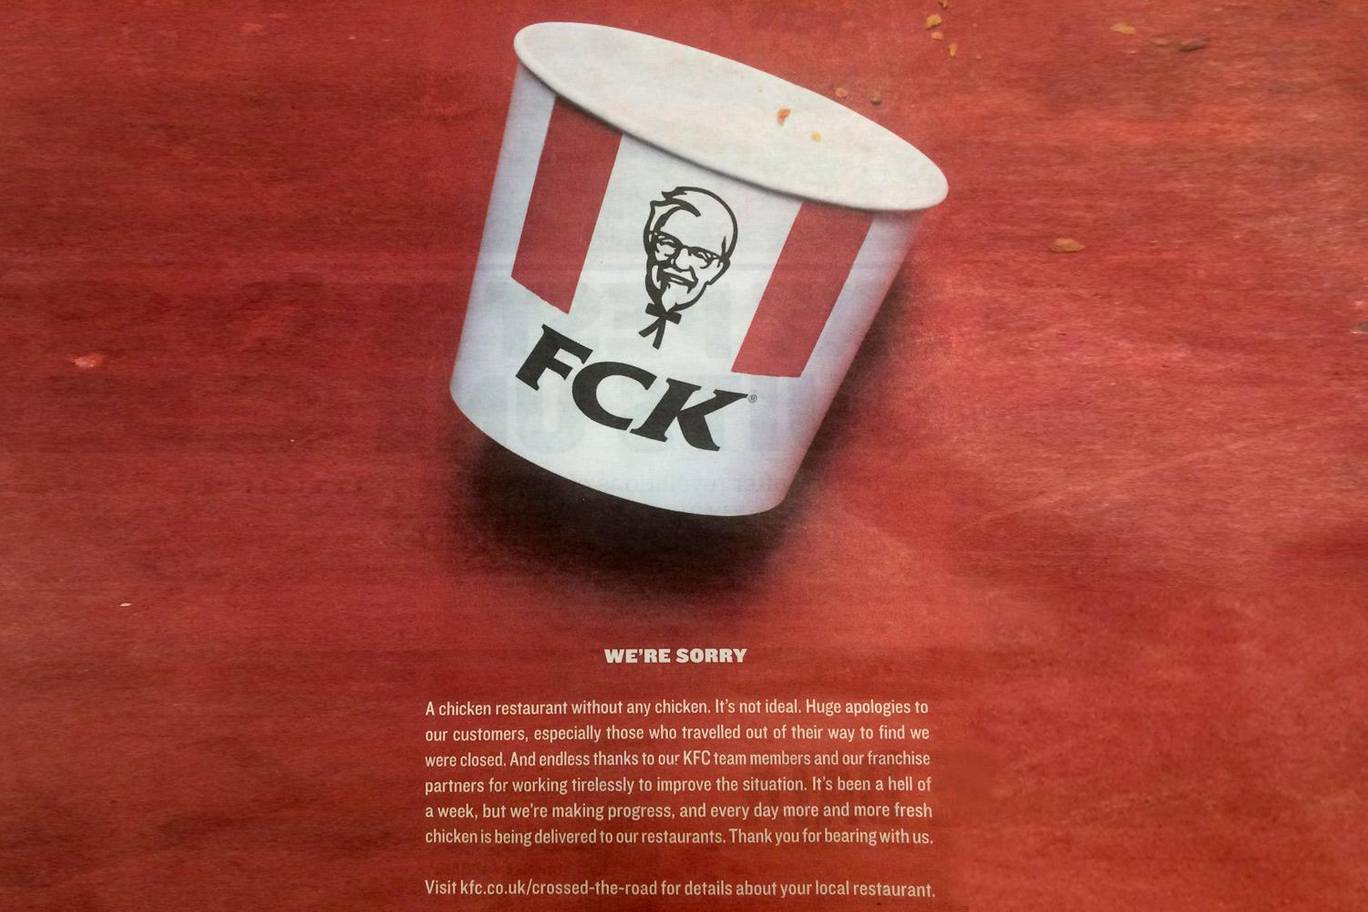 How KFC turned their worst nightmare into a positive PR!